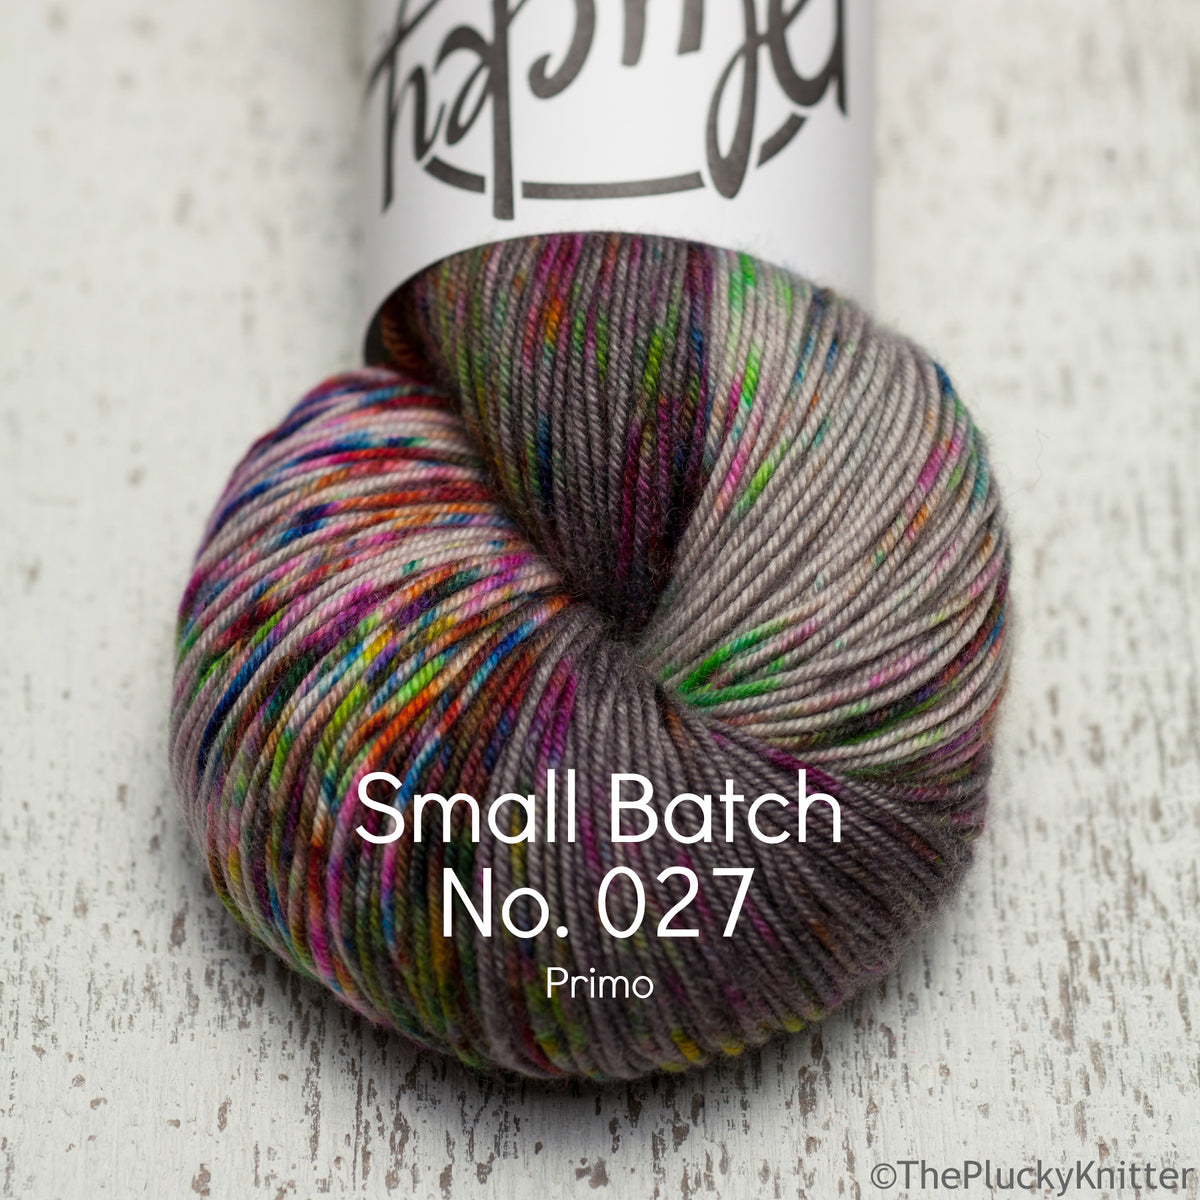 Small Batch No. 027